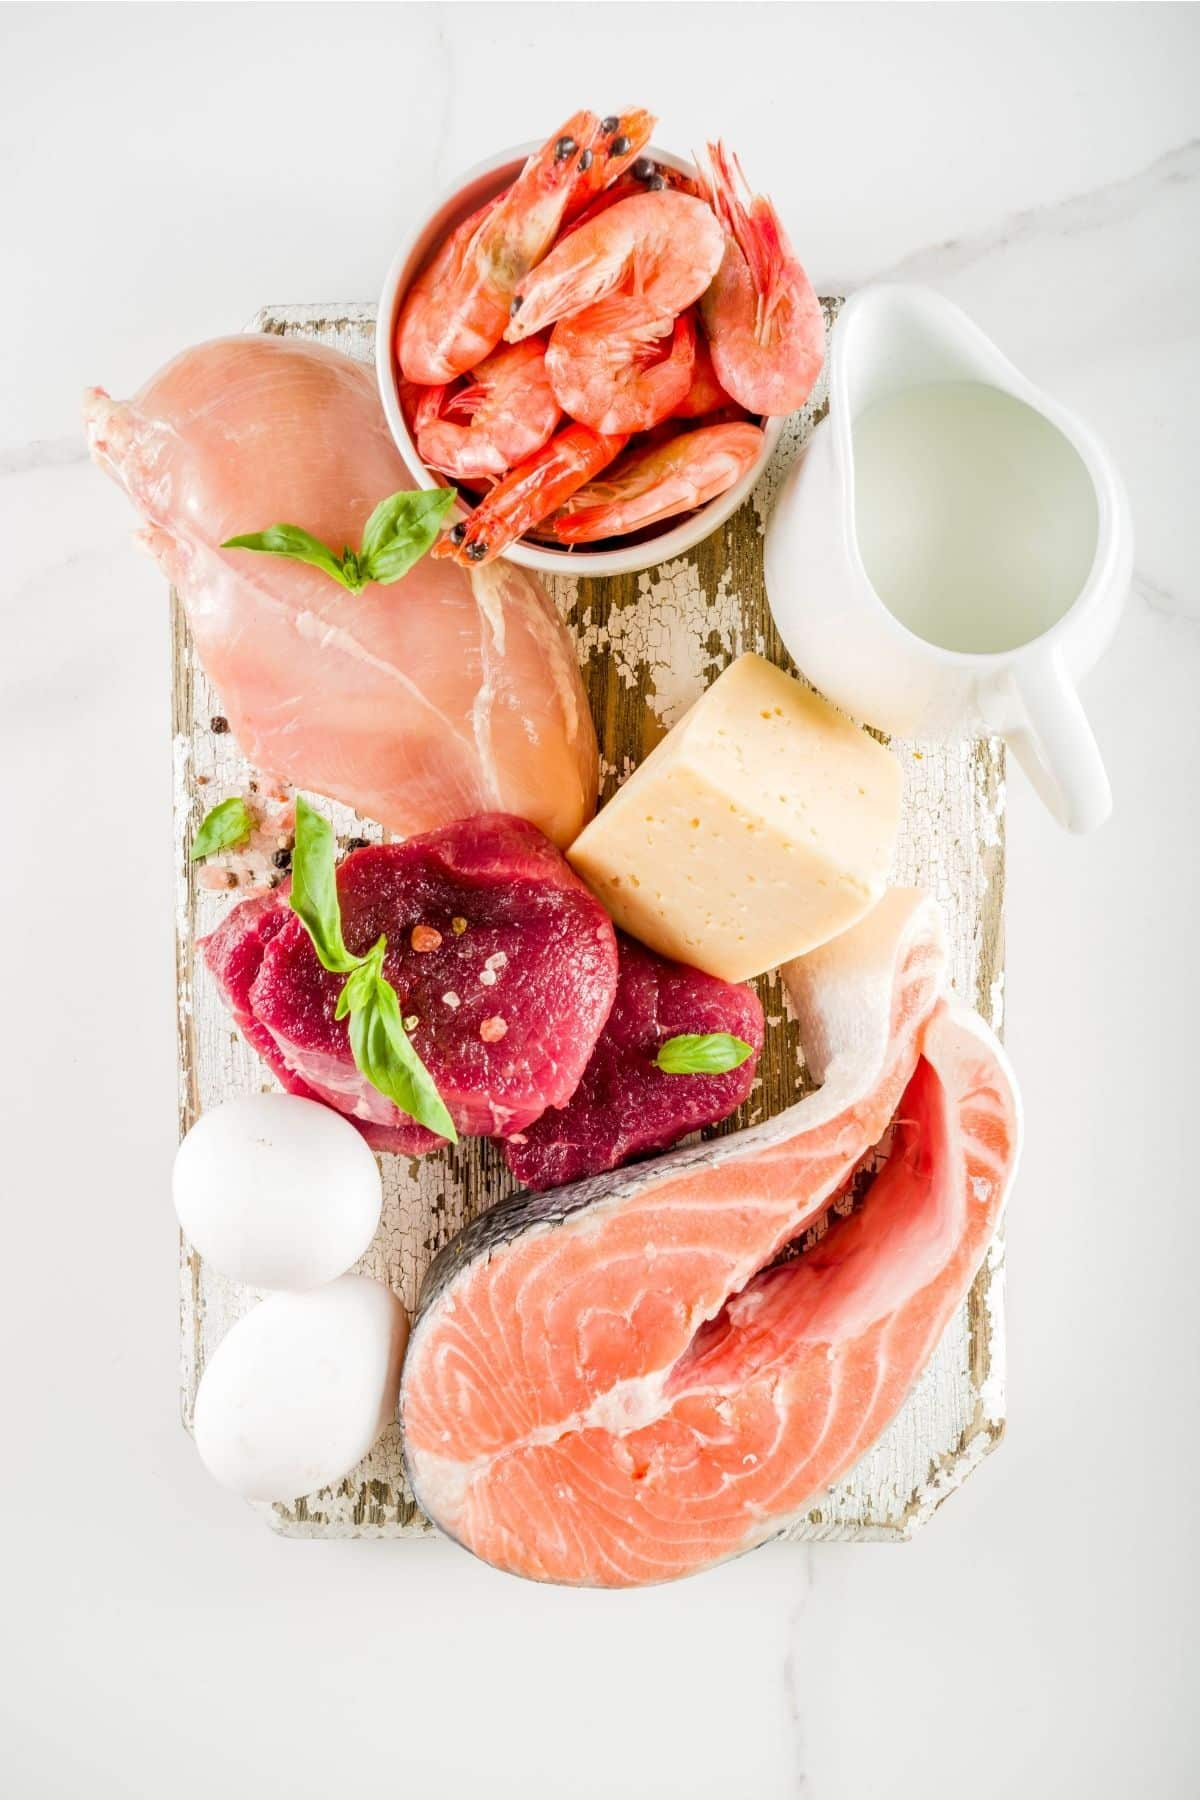 Raw chicken, meat and fish on wood